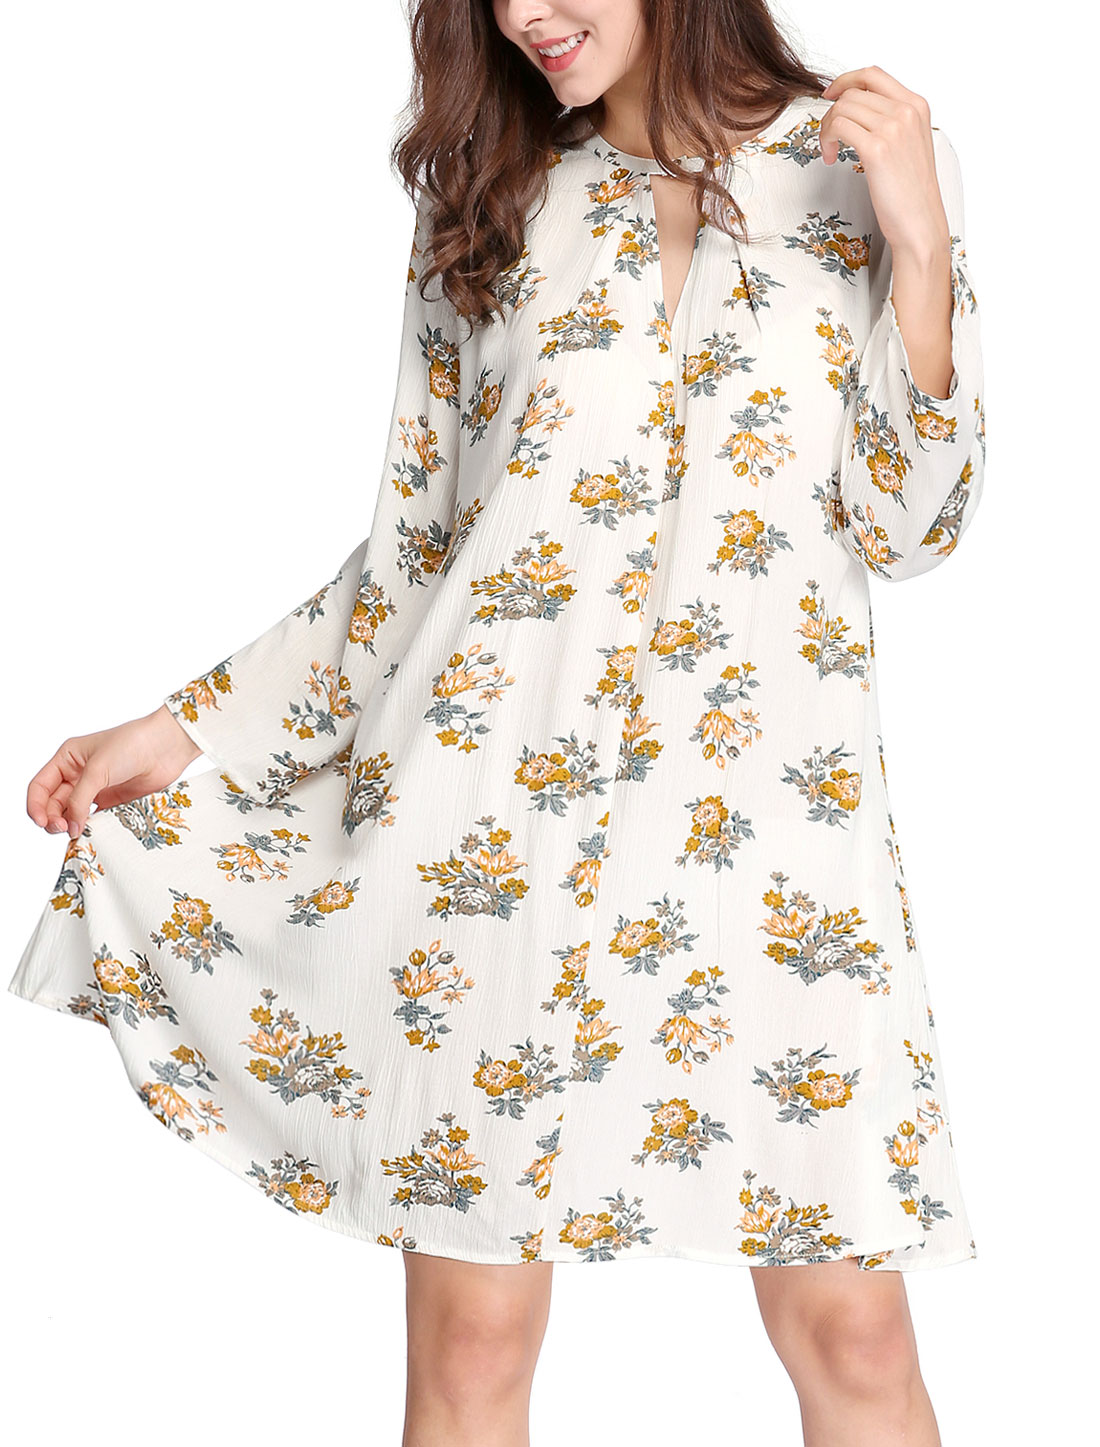 Women Keyhole Front Floral Prints Oversized Swing Dress White S